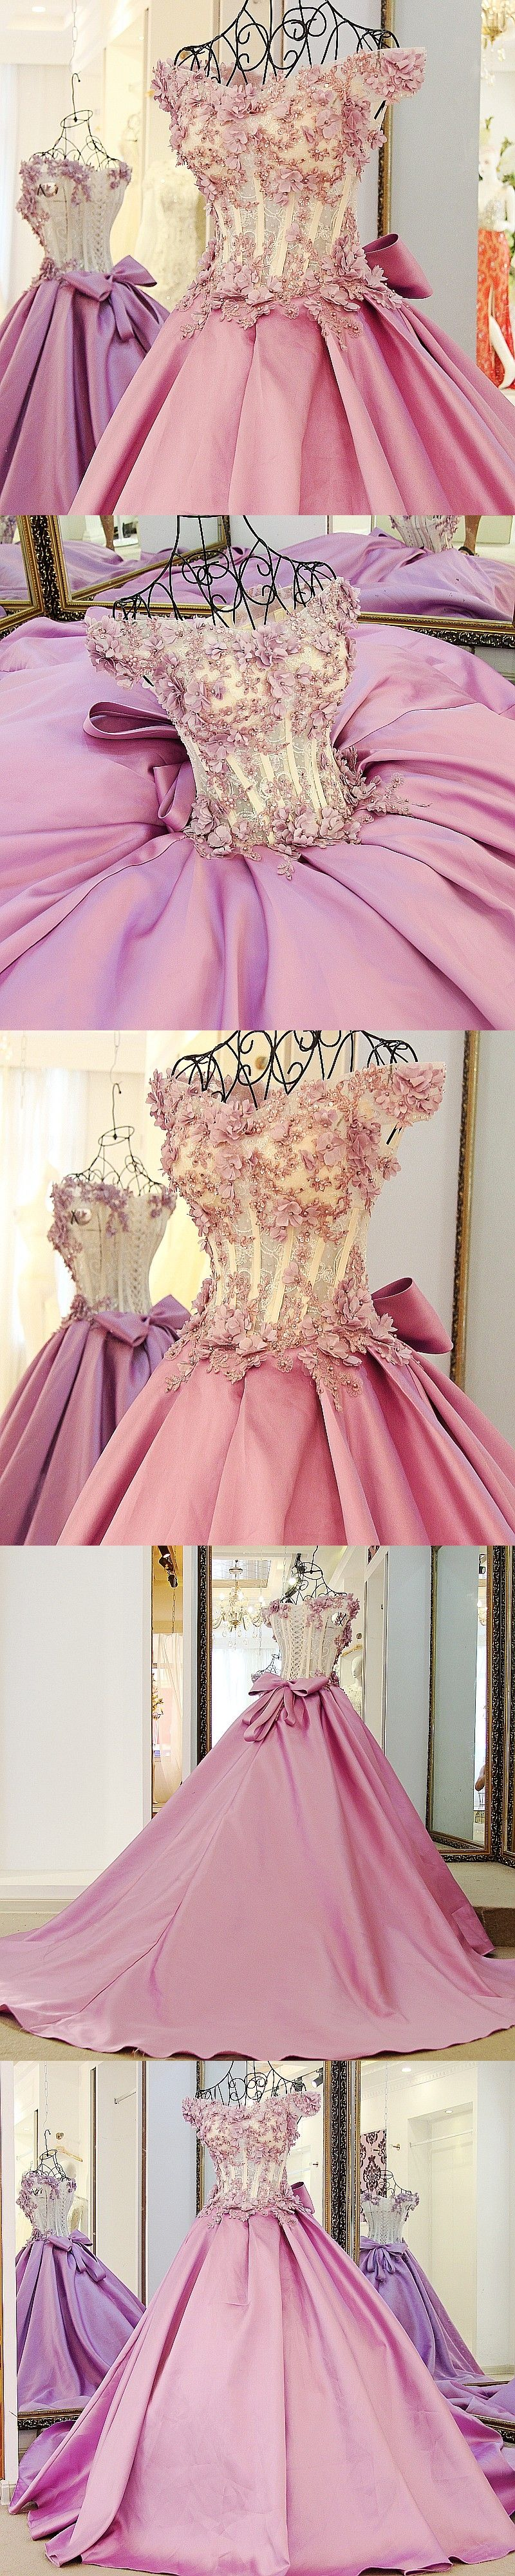 Ball Gown Prom Dresses Brush Train Hand-Made Flower Lace Prom Dress ...